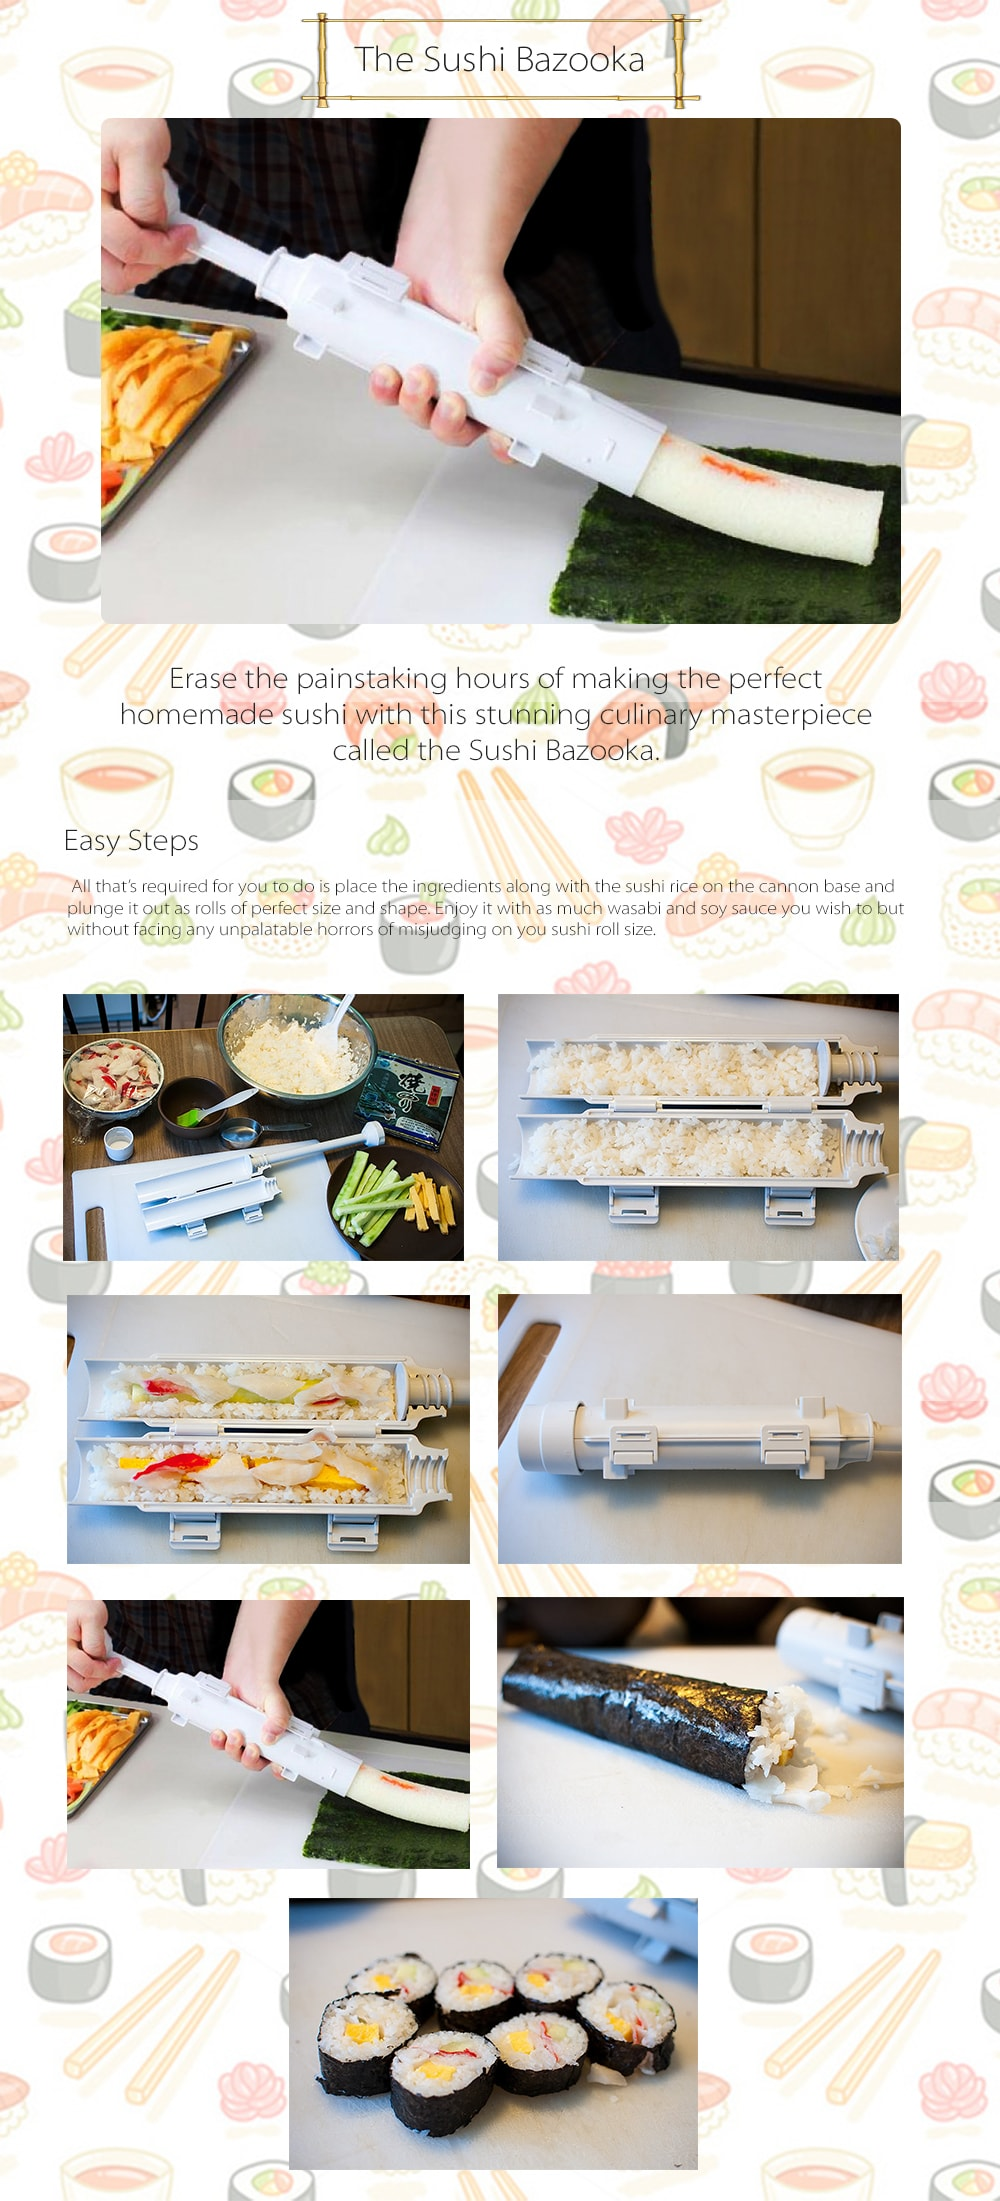 The Sushi Bazooka Make Your Own Perfect Sushi